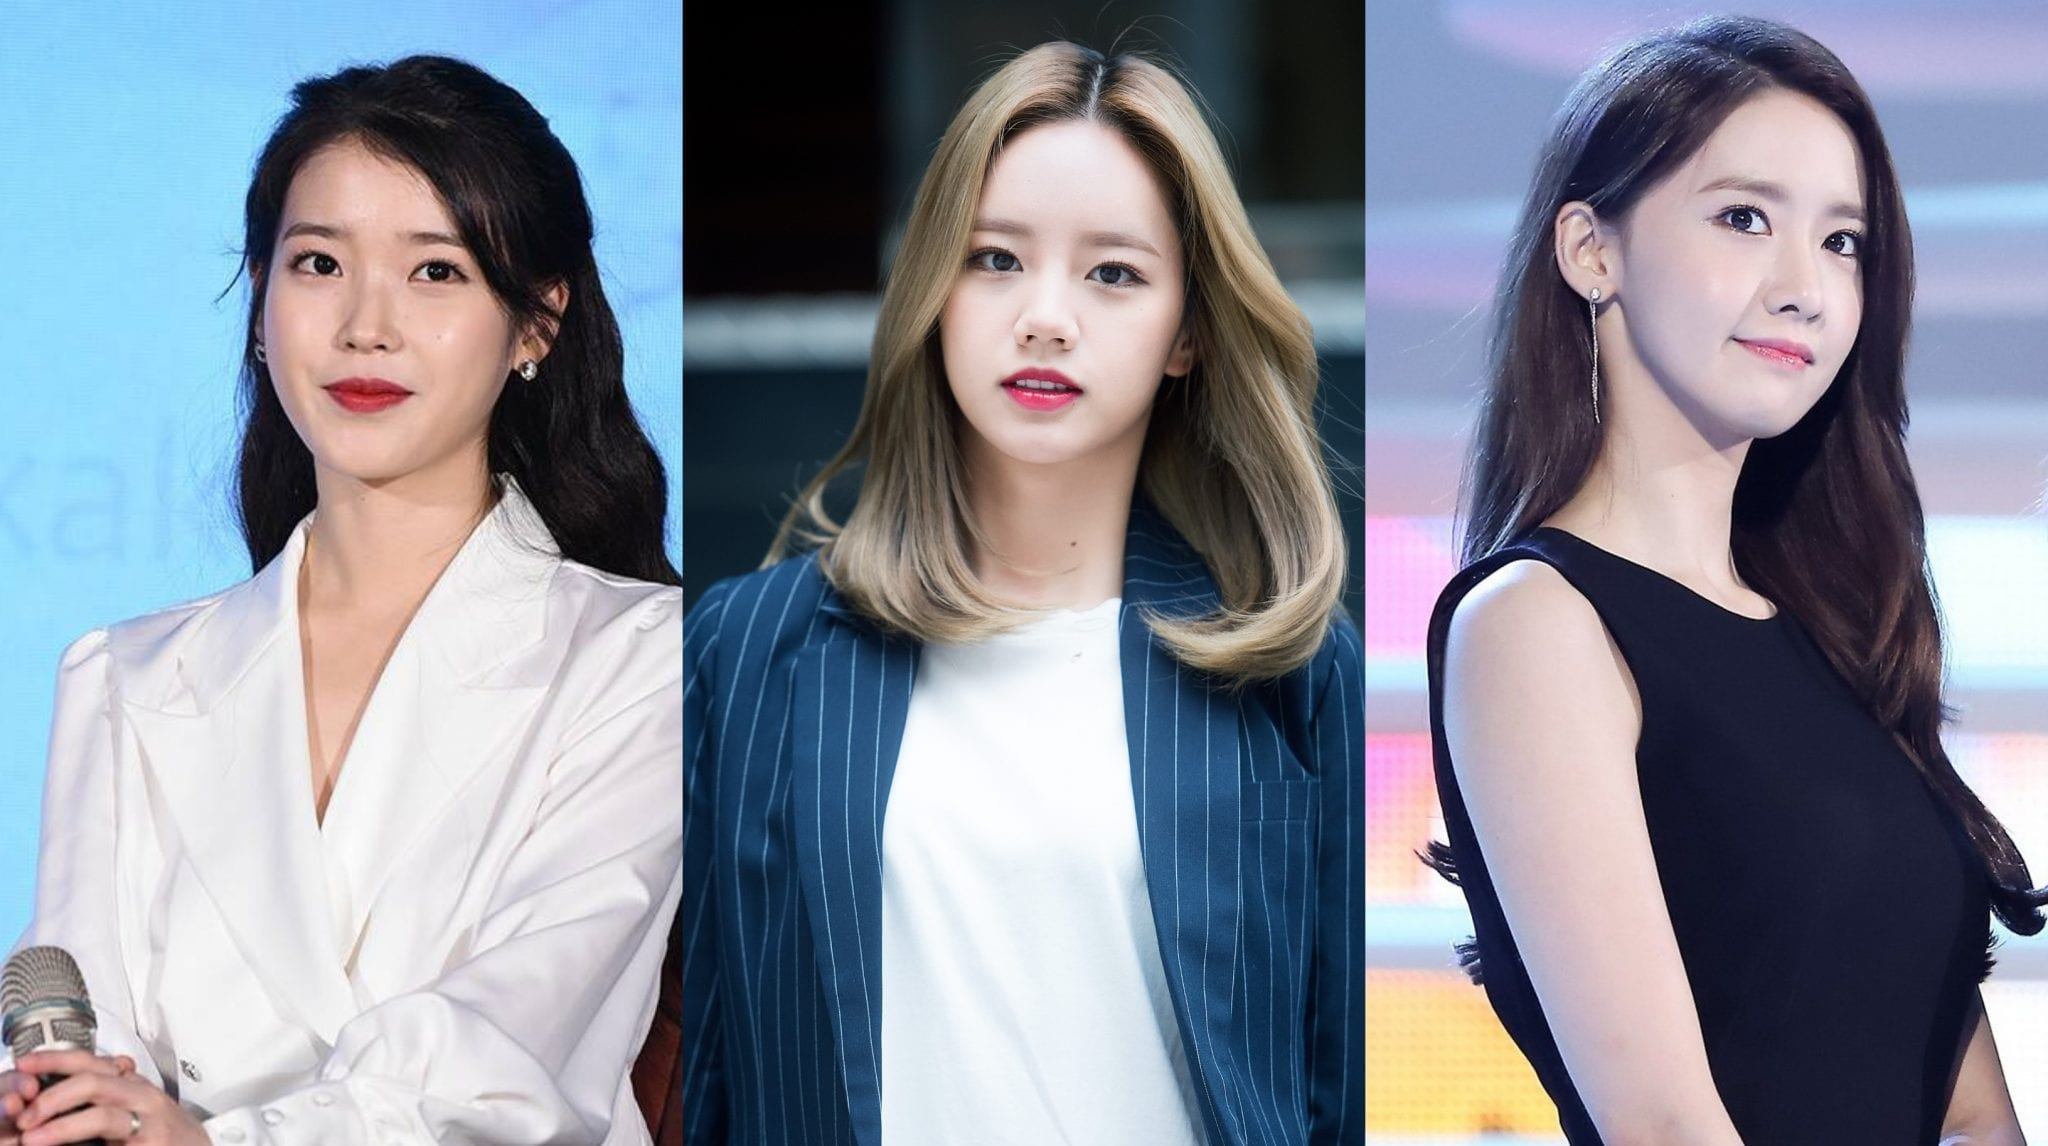 Charity Angels: K-pop Women Who Are Beautiful Both Inside and Out